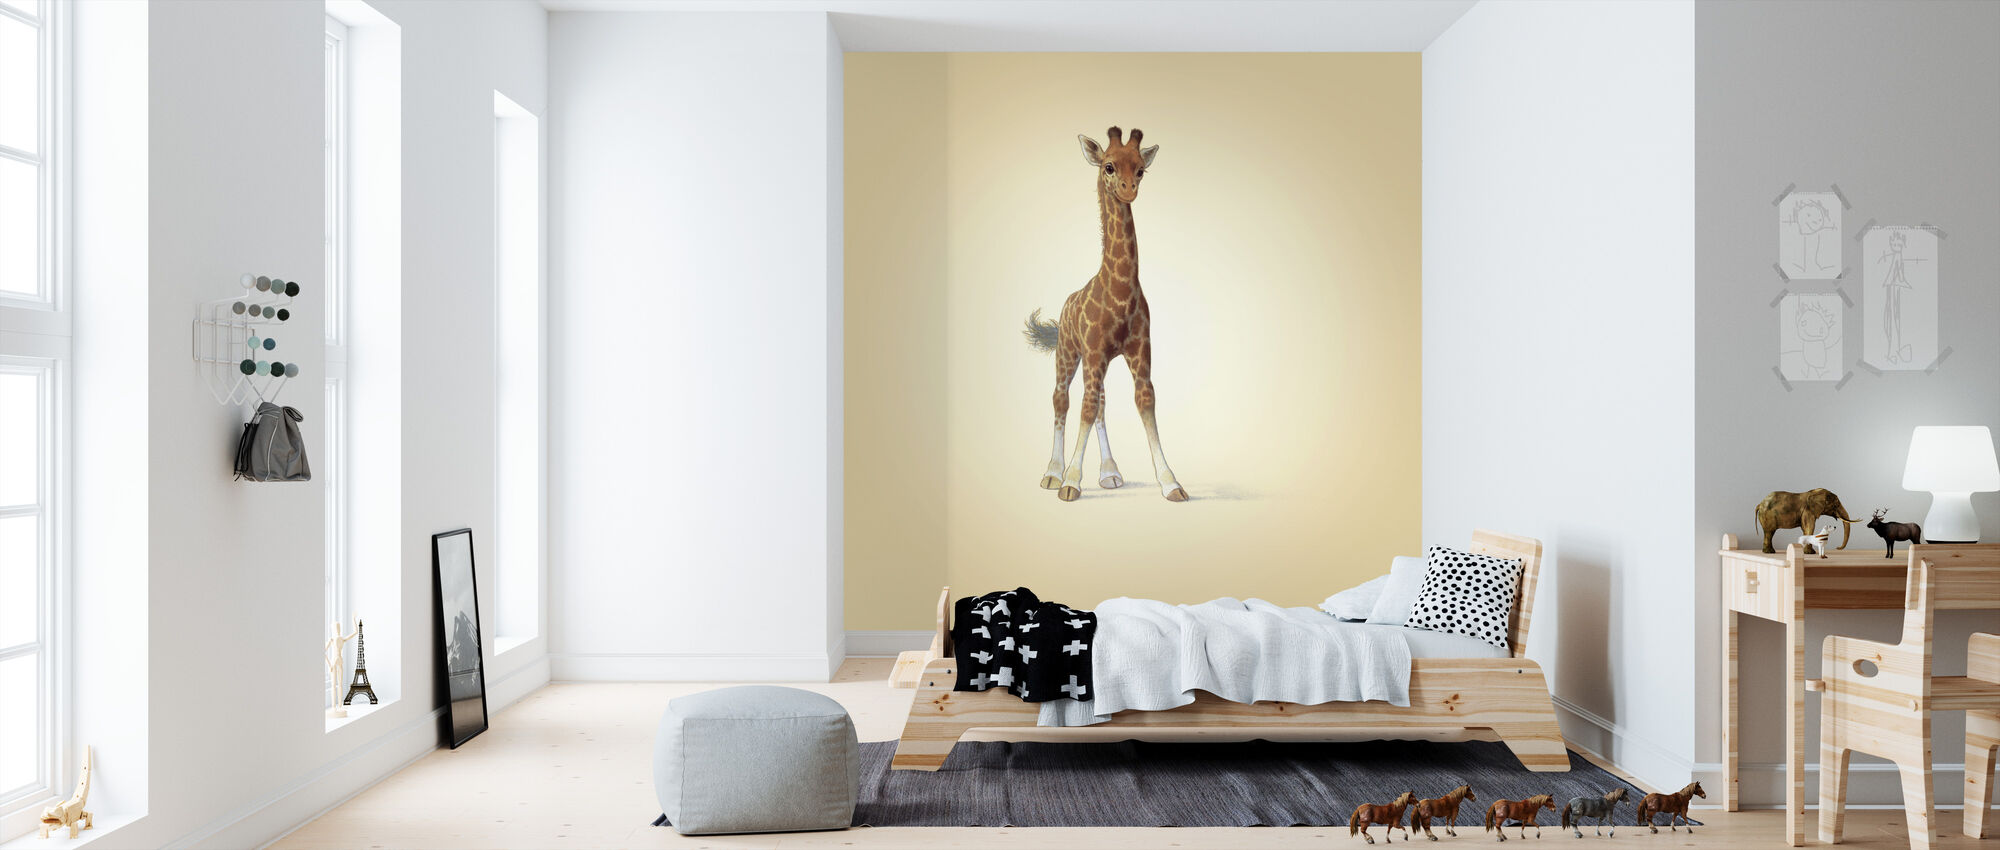 Giraffe Calf - Wallpaper - Kids Room